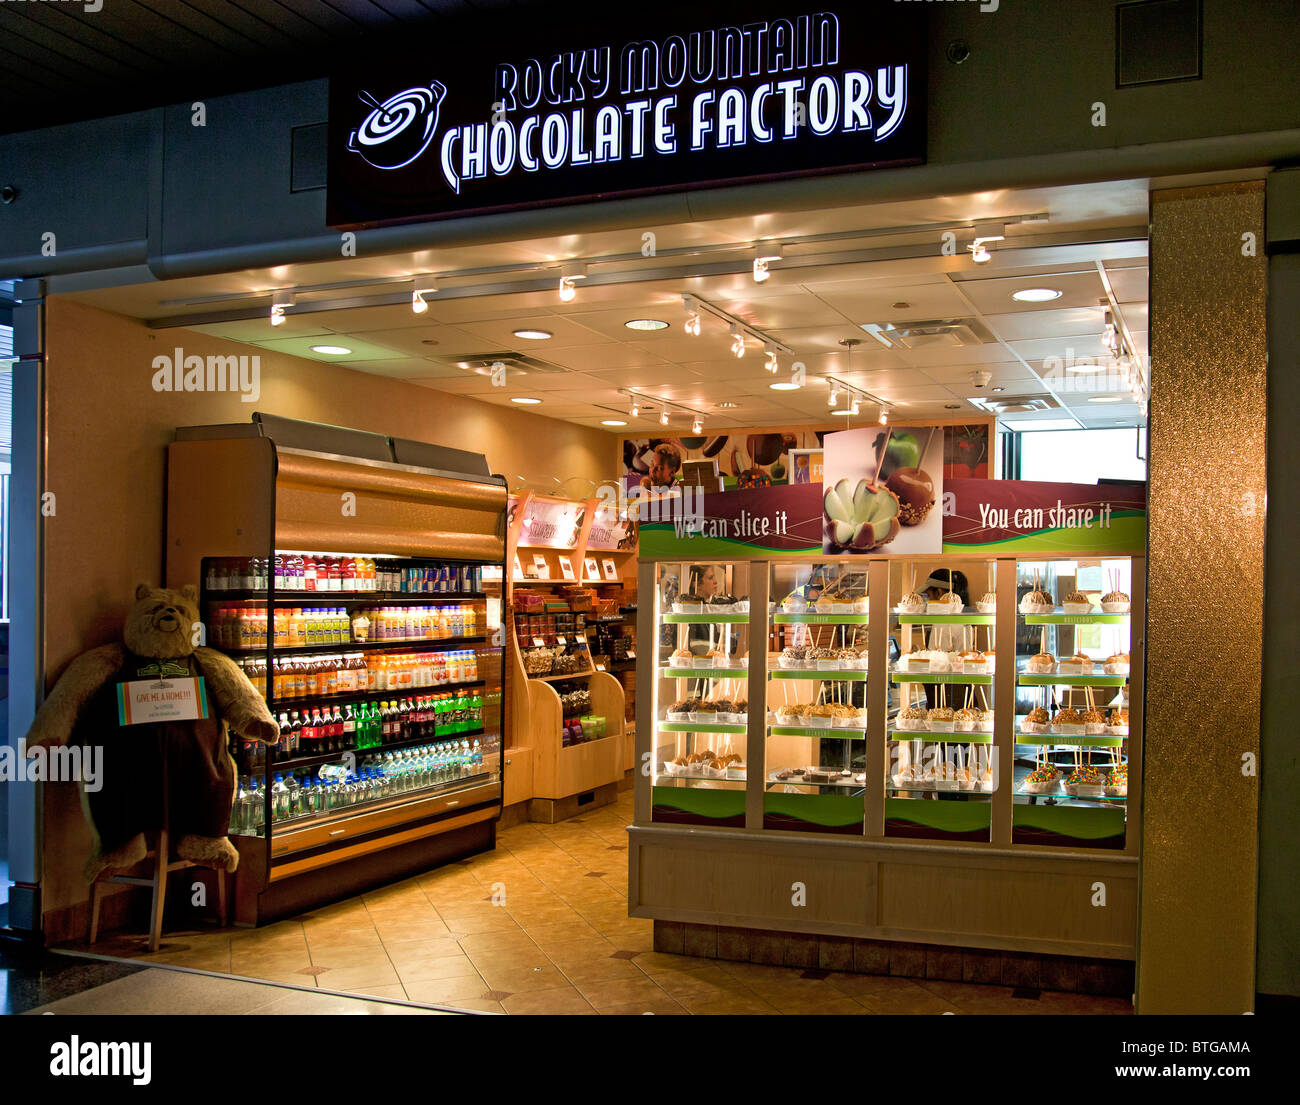 Airport Chocolate Shop Stock Photos & Airport Chocolate Shop Stock ...